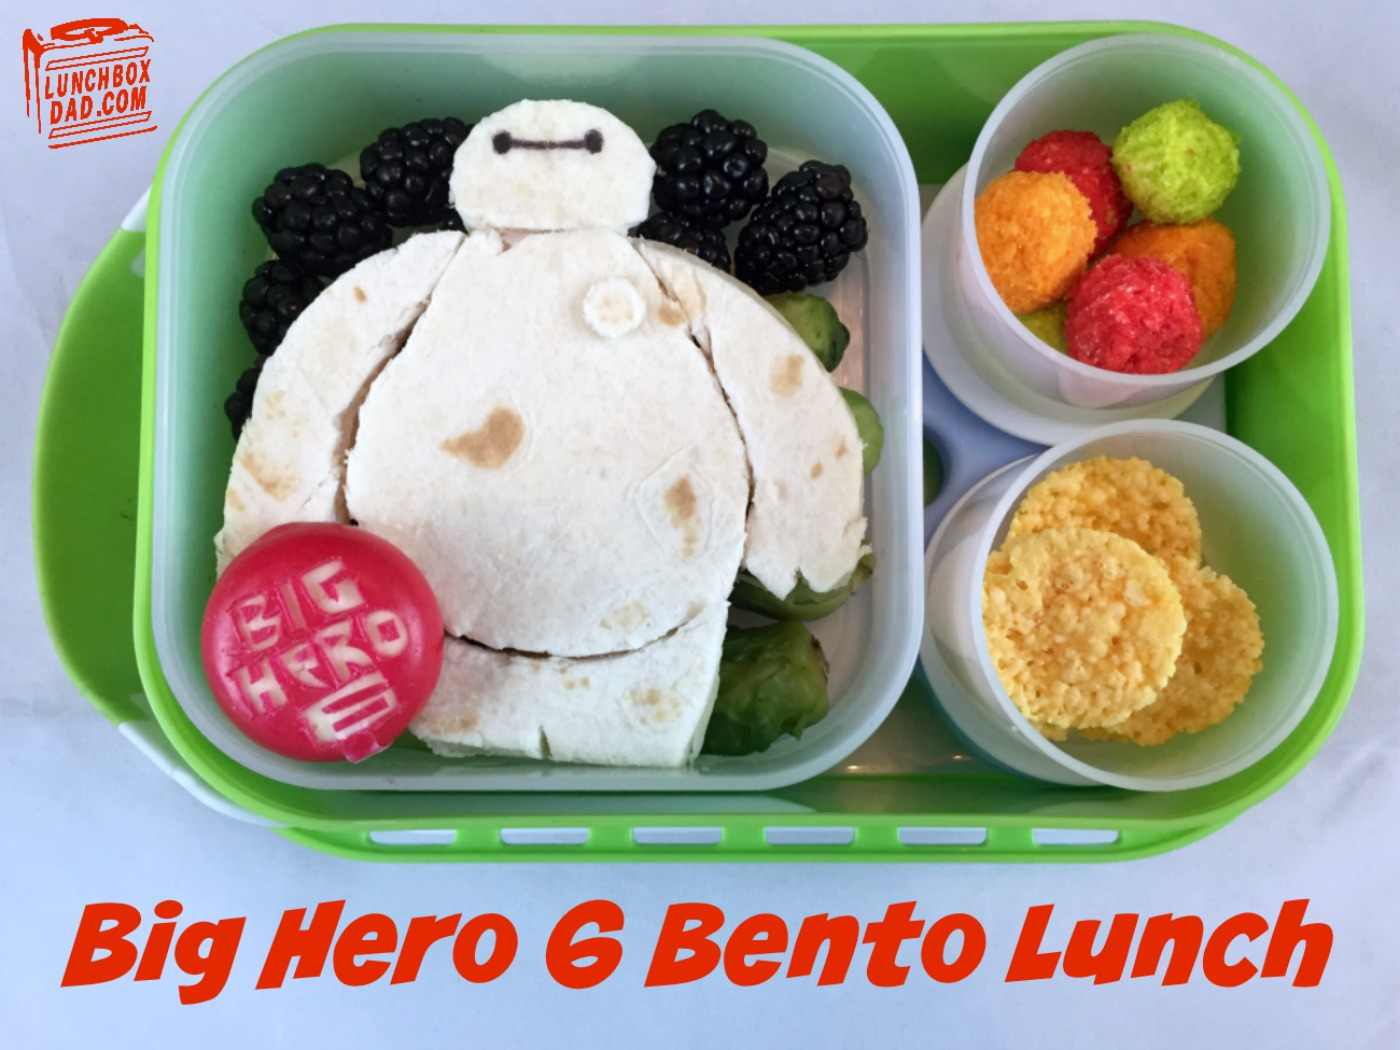 Disney's Big Hero 6 Superhero Bento Lunch